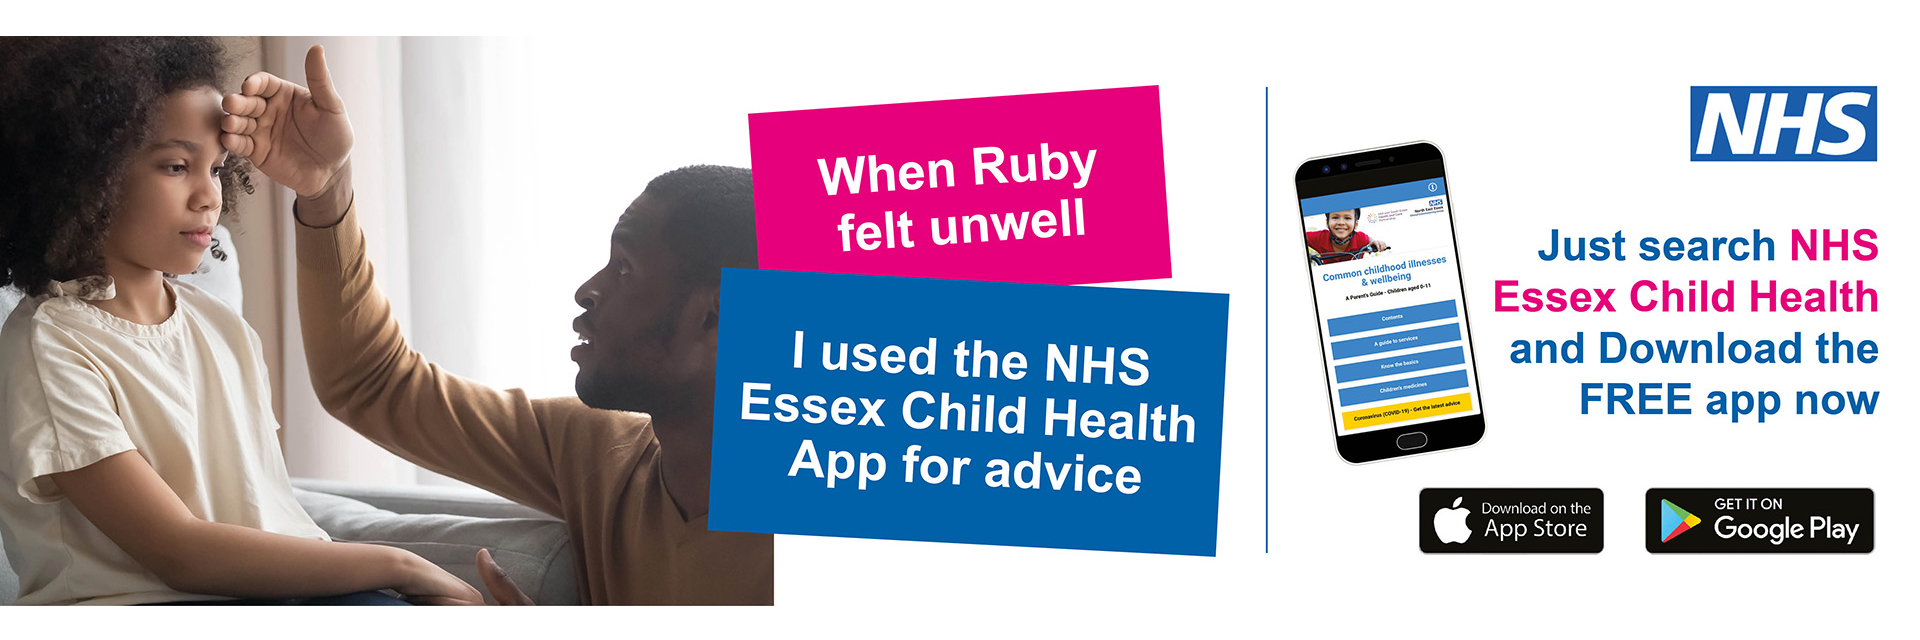 When Ruby felt unwell, I used the NHS Essex Child Health App for advice